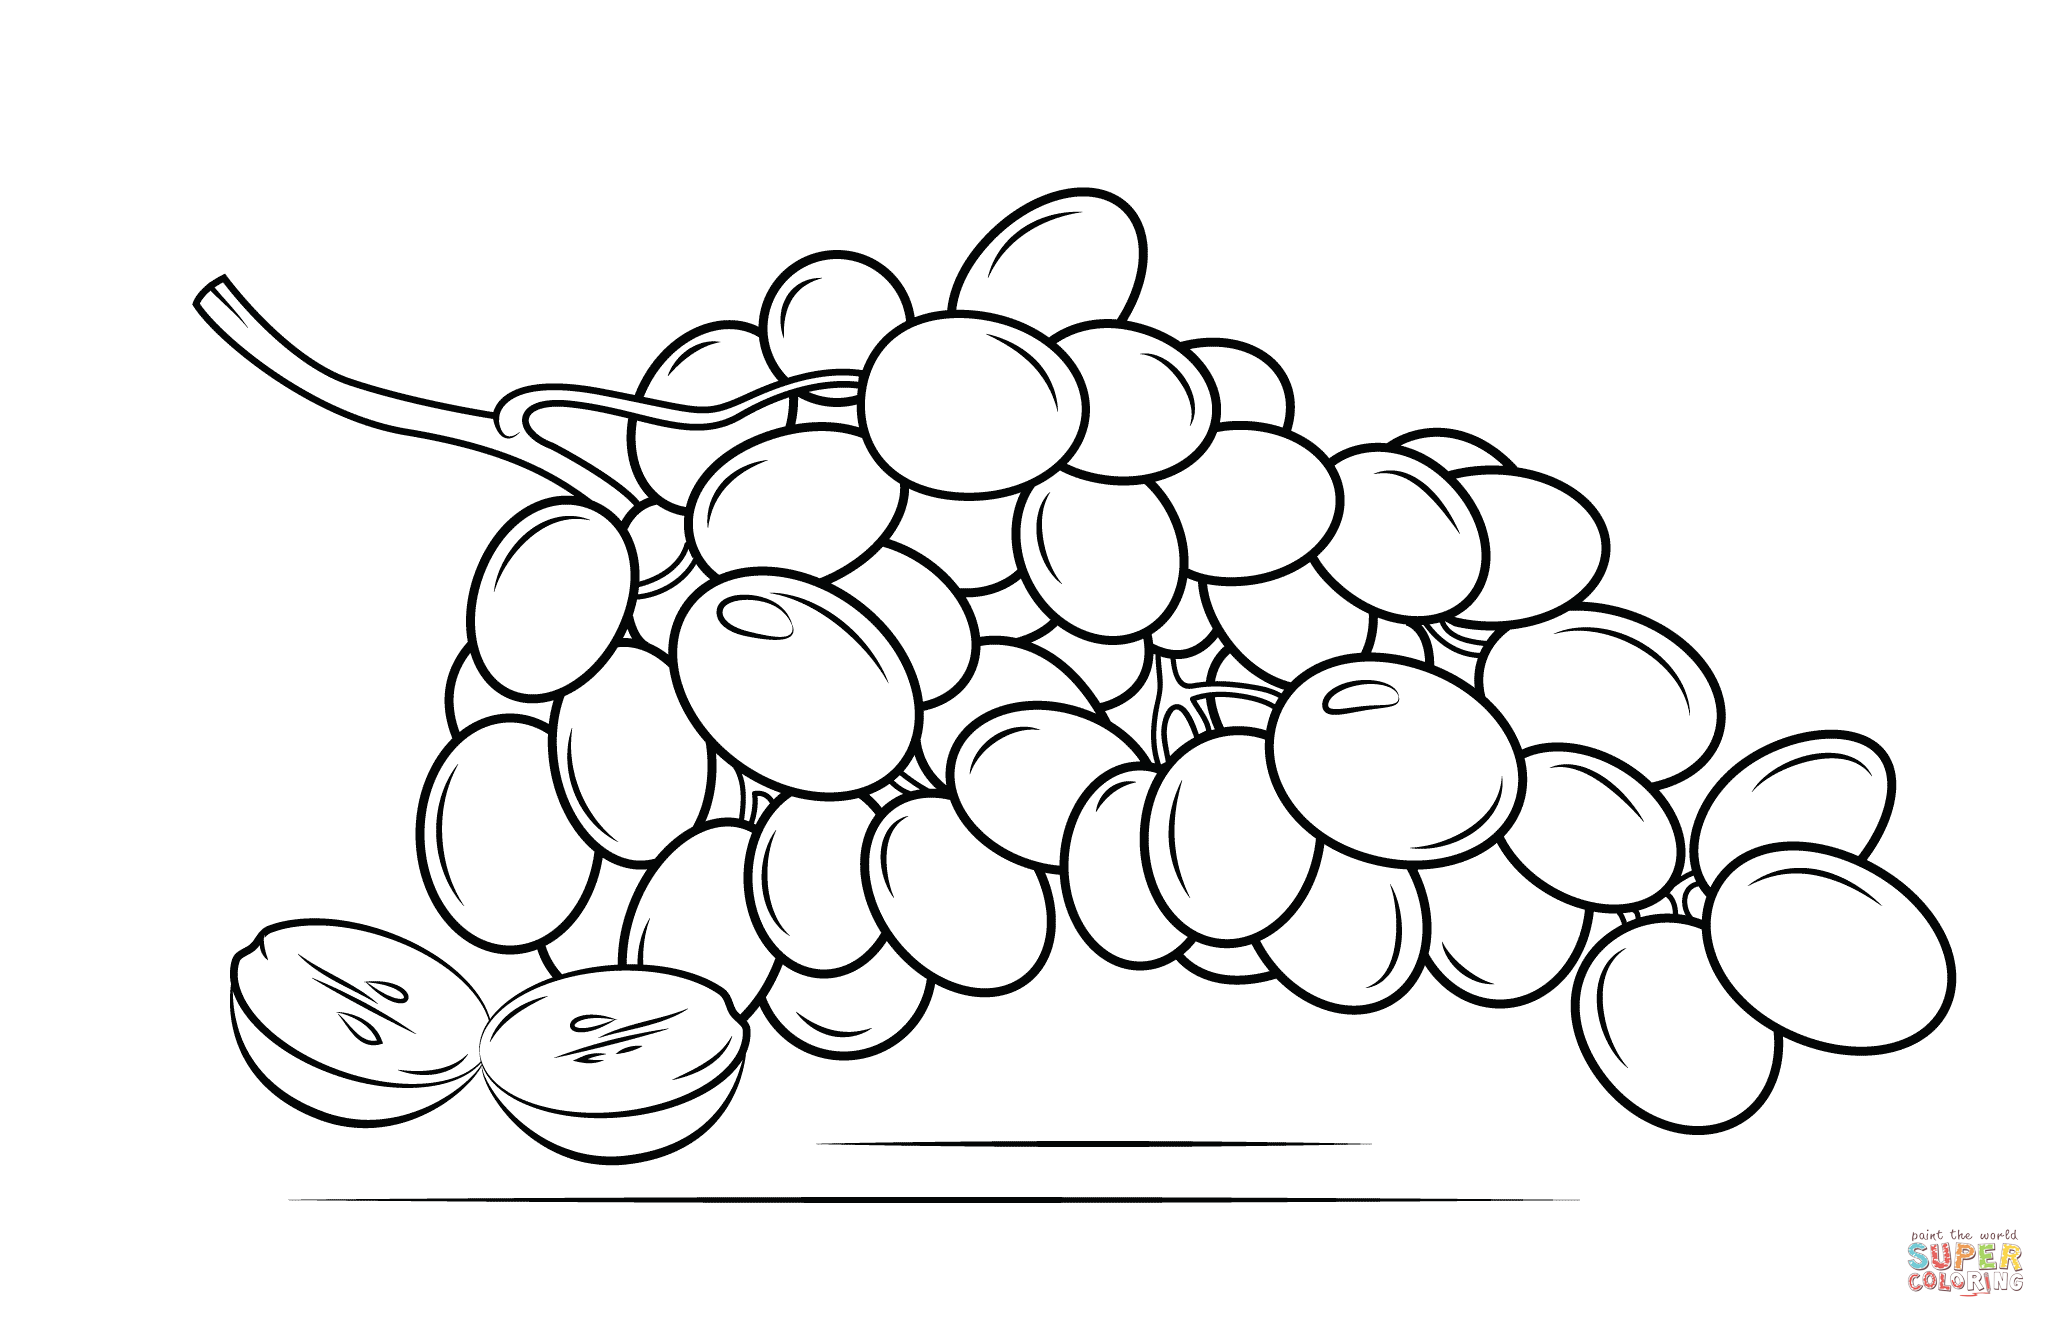 Free G S Coloring Page Download Free Clip Art Free